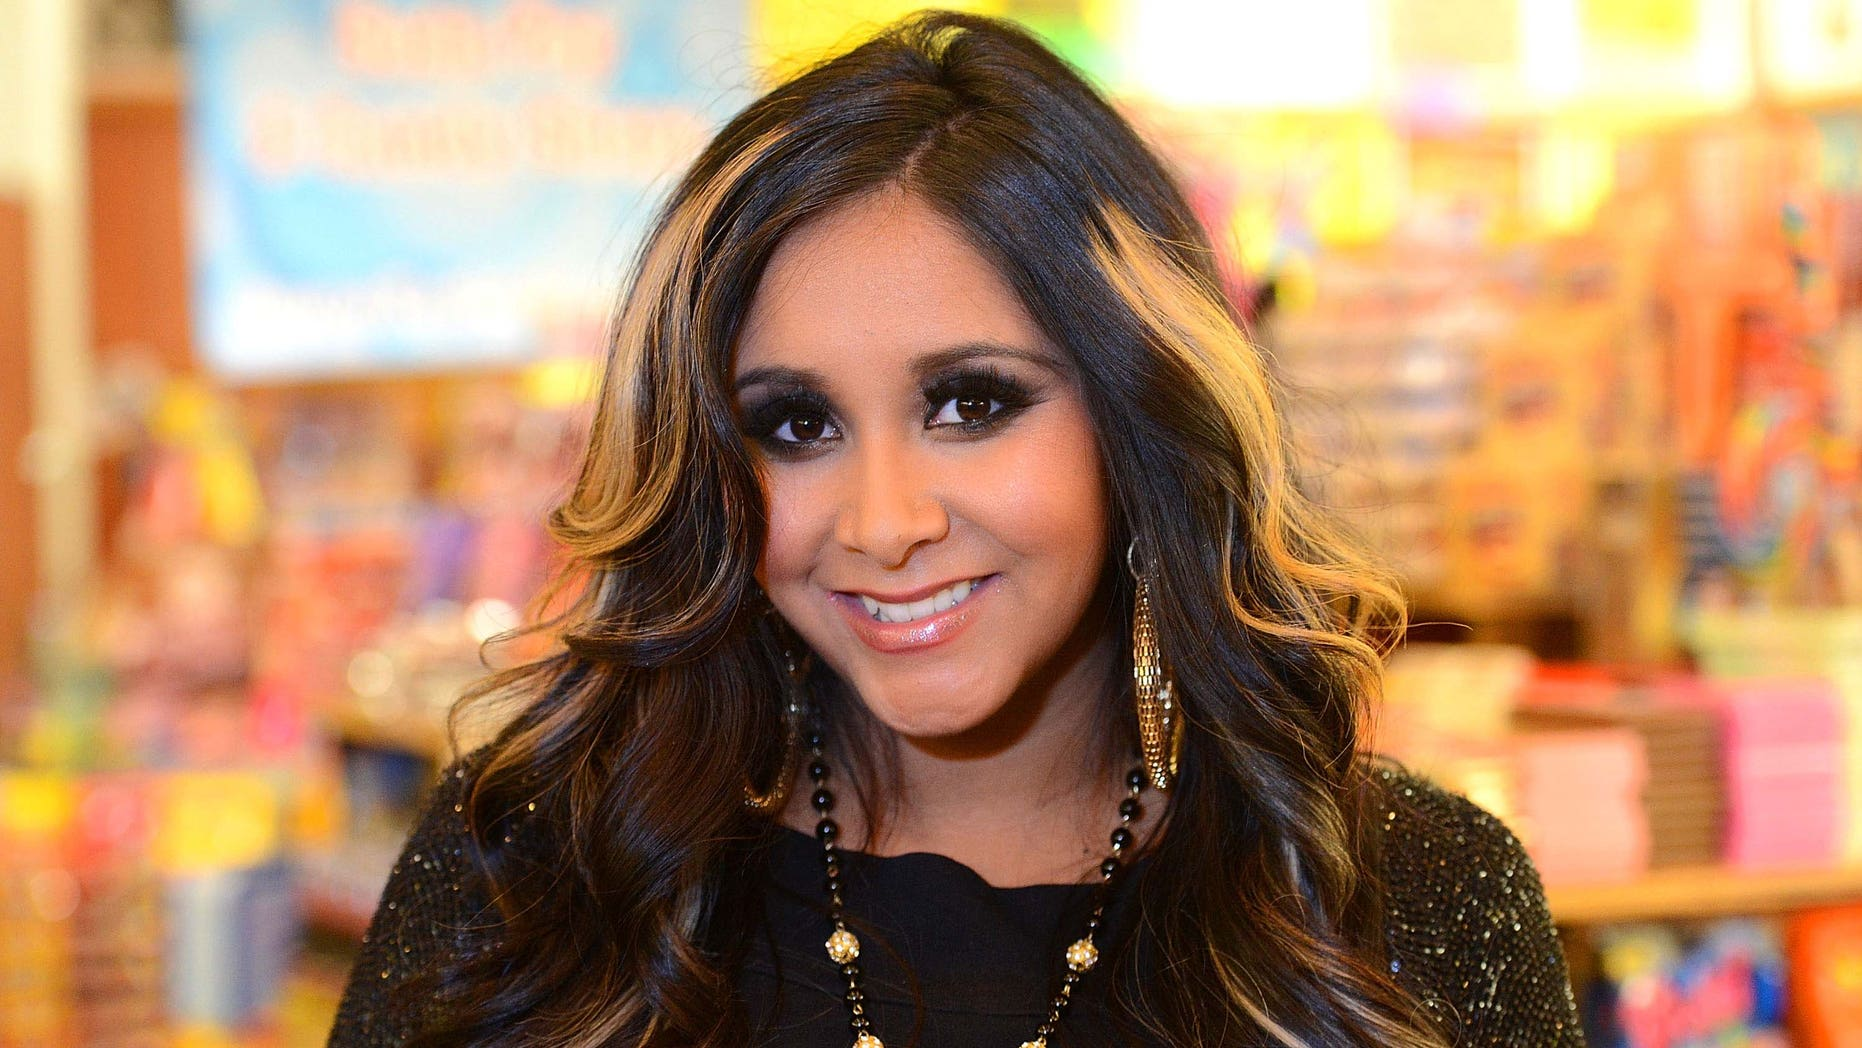 """LOS ANGELES, CA - JULY 18:  Reality TV star Nicole """"Snooki"""" Polizzi launches Snooki's Wild Cherry soda held at Rocket Fizz Soda Pop and Candy Shop on July 18, 2012 in Los Angeles, California.  (Photo by Jason Merritt/Getty Images)"""